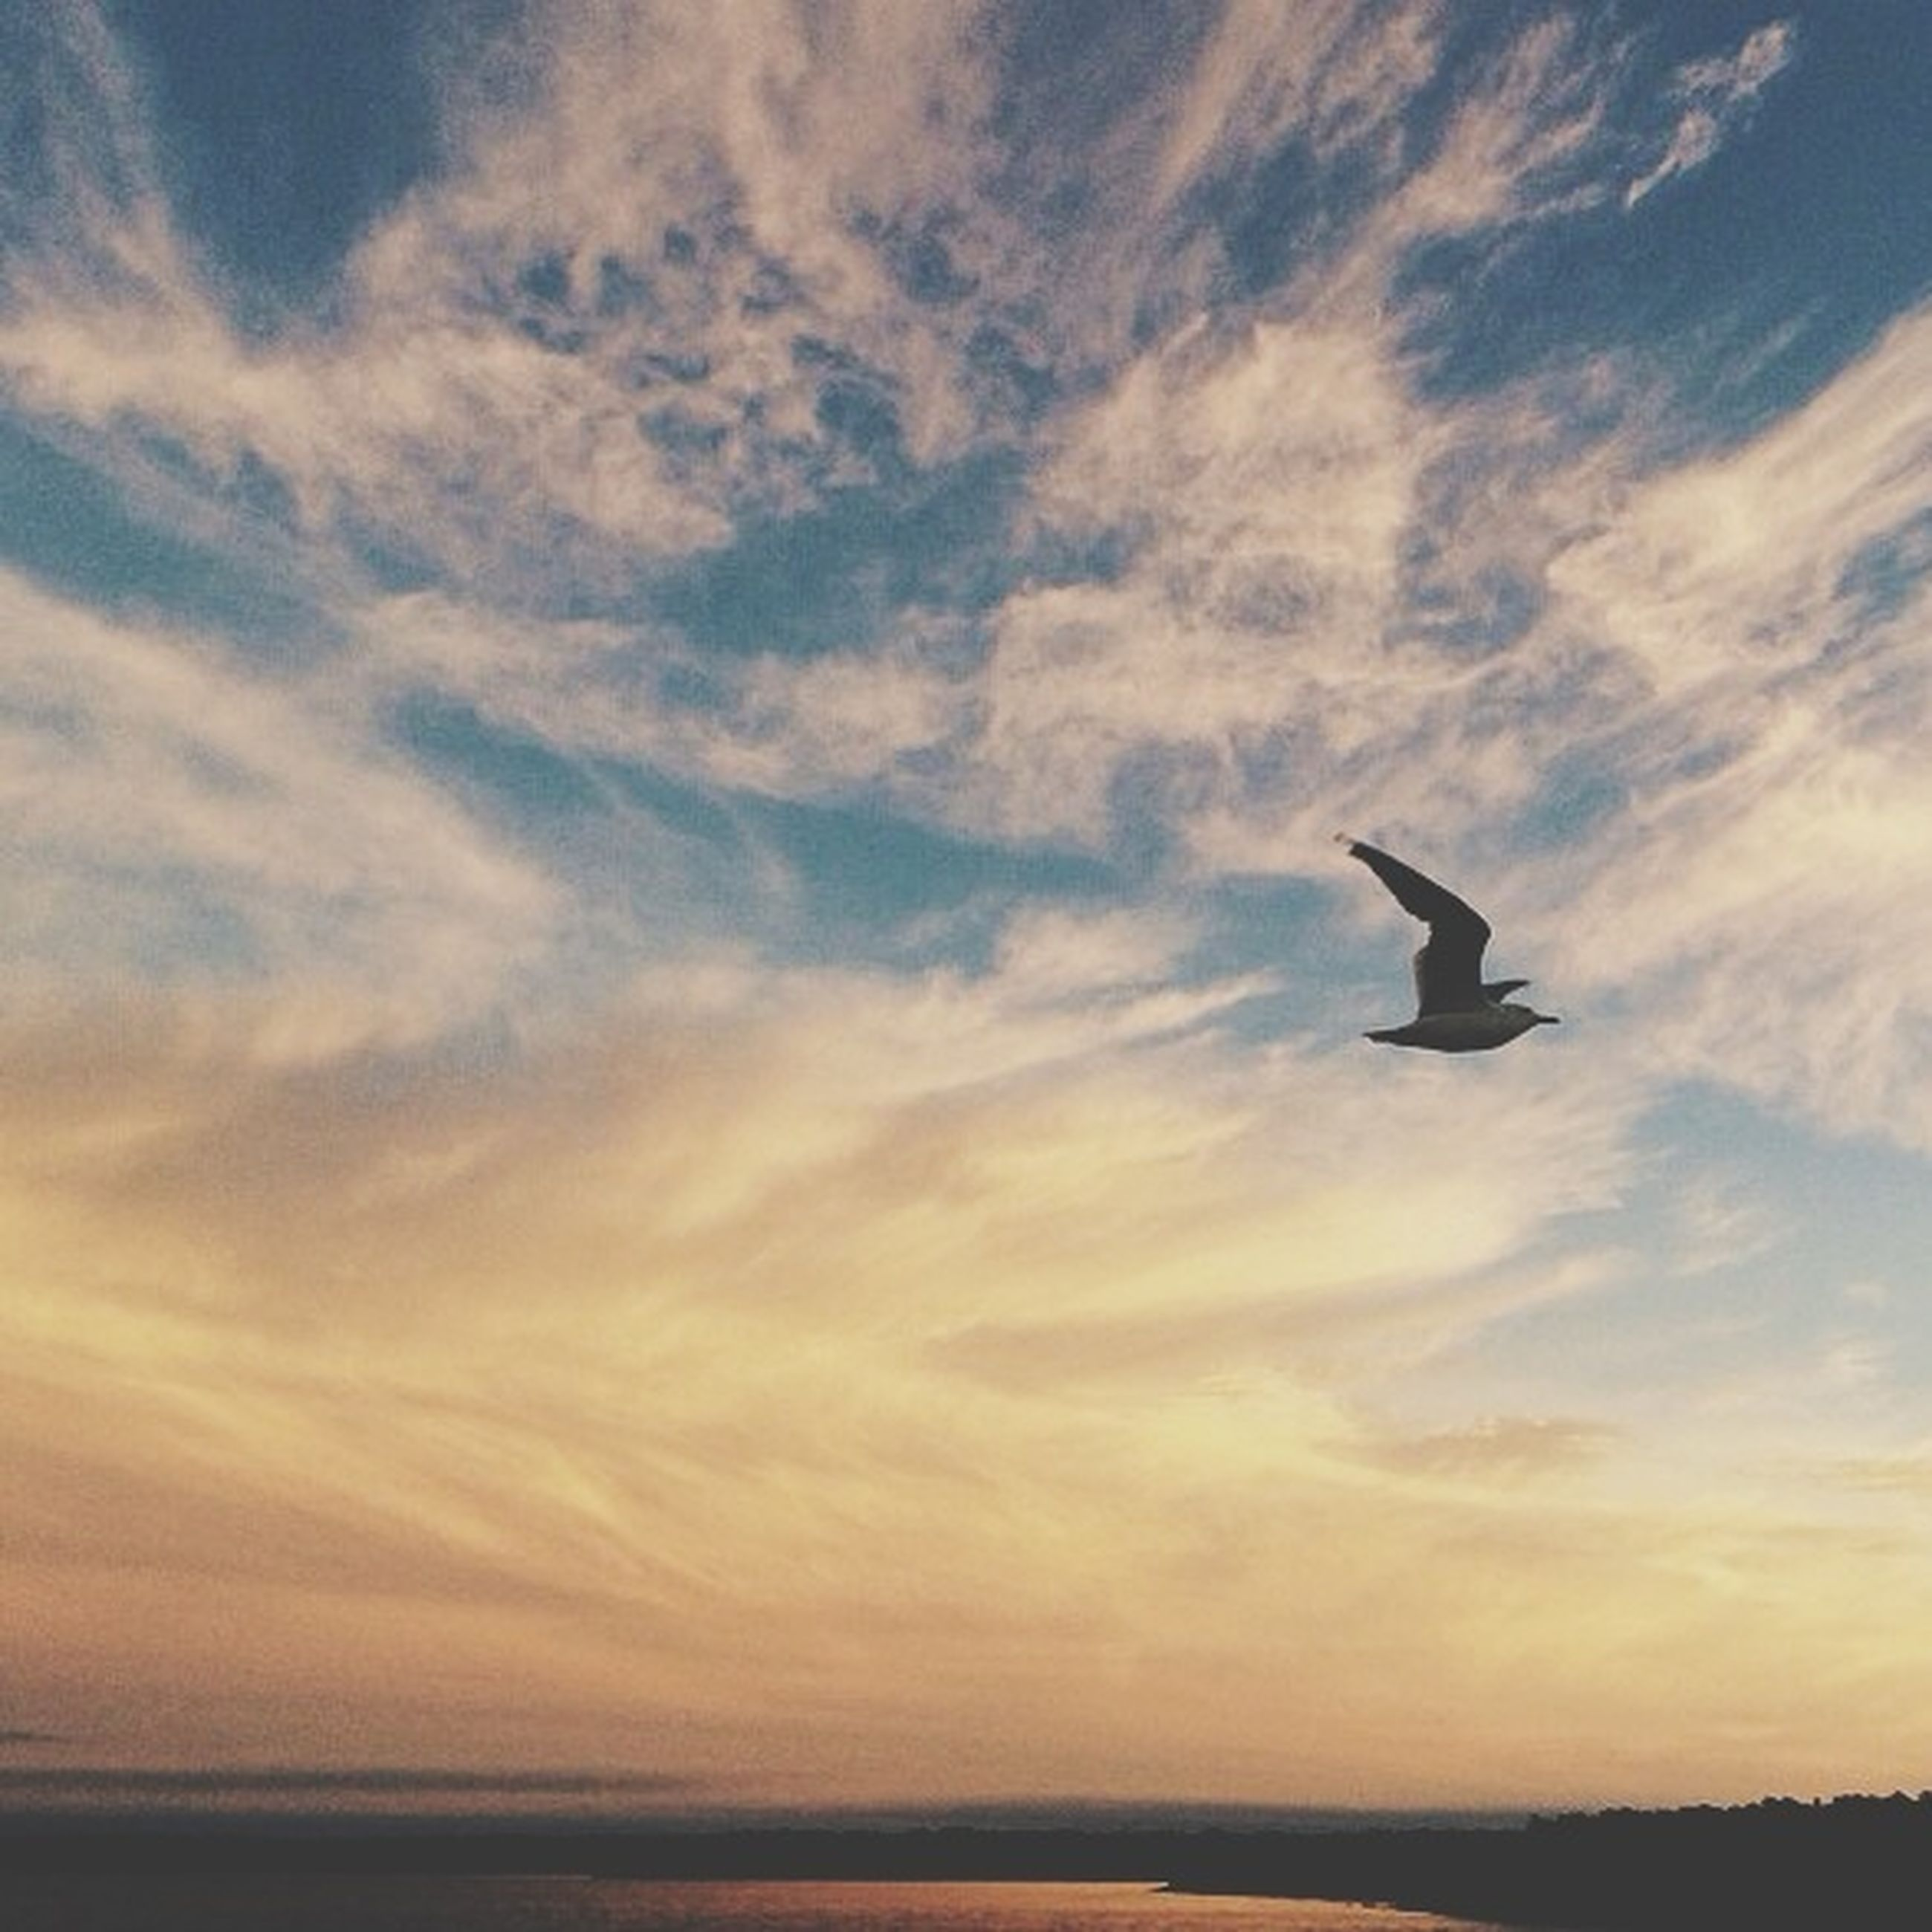 bird, animal themes, animals in the wild, wildlife, flying, one animal, sky, silhouette, spread wings, mid-air, nature, cloud - sky, beauty in nature, tranquility, full length, sunset, low angle view, scenics, outdoors, seagull